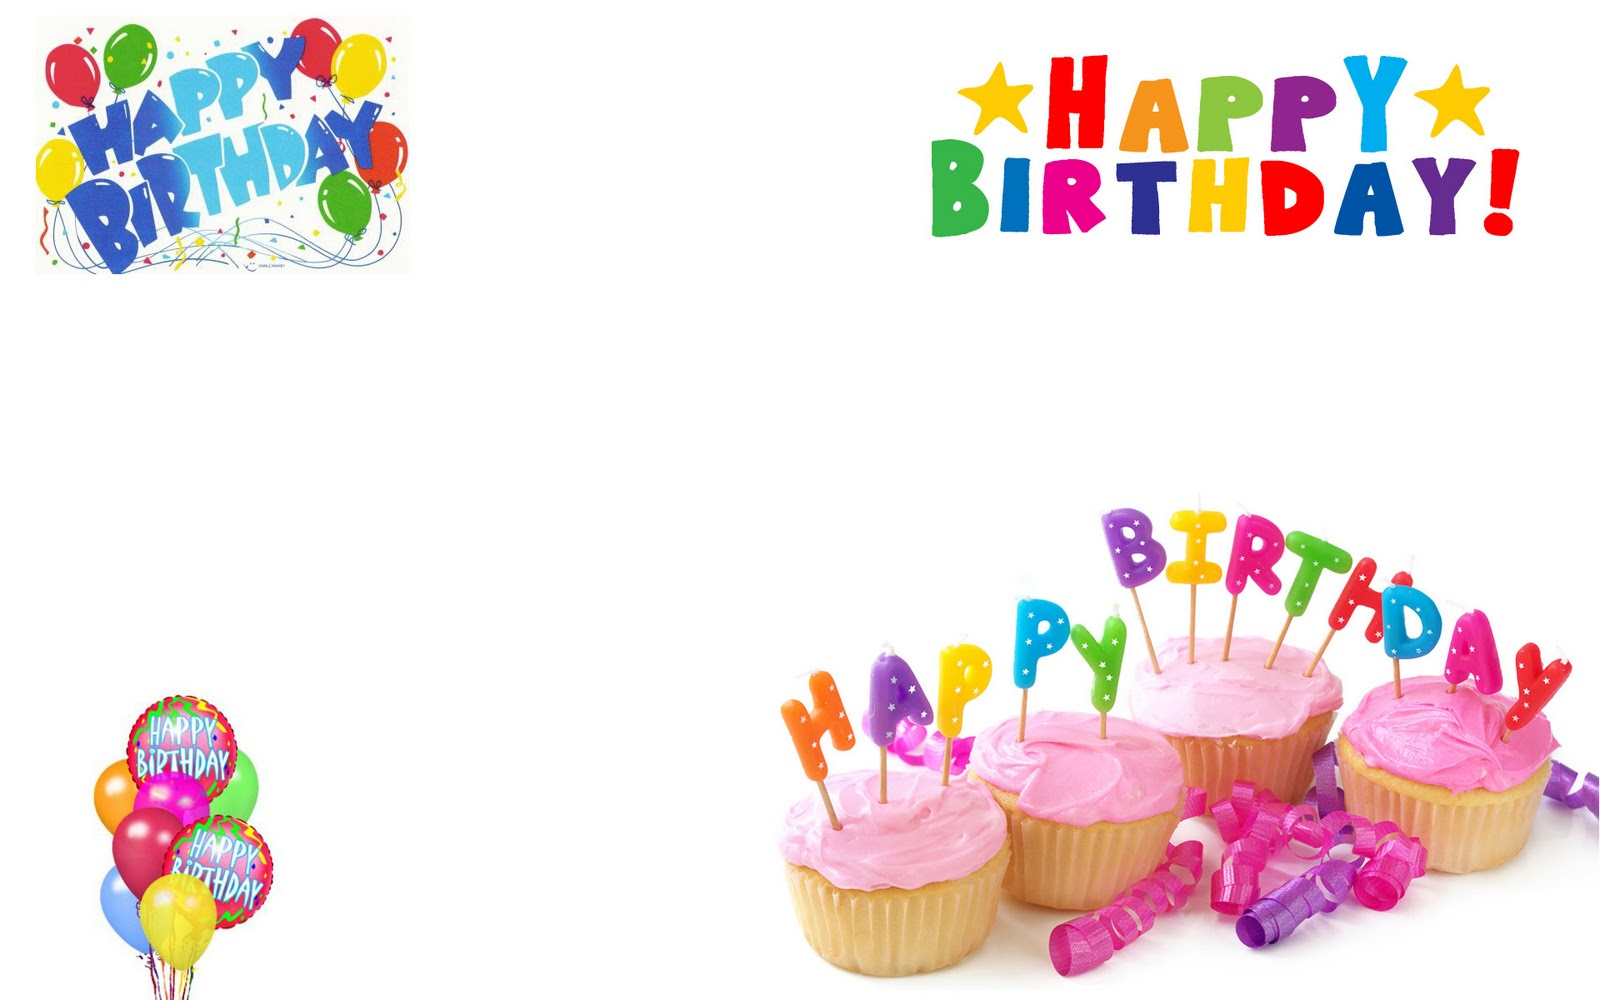 Hd Blank Birthday Background : HD Wallpapers